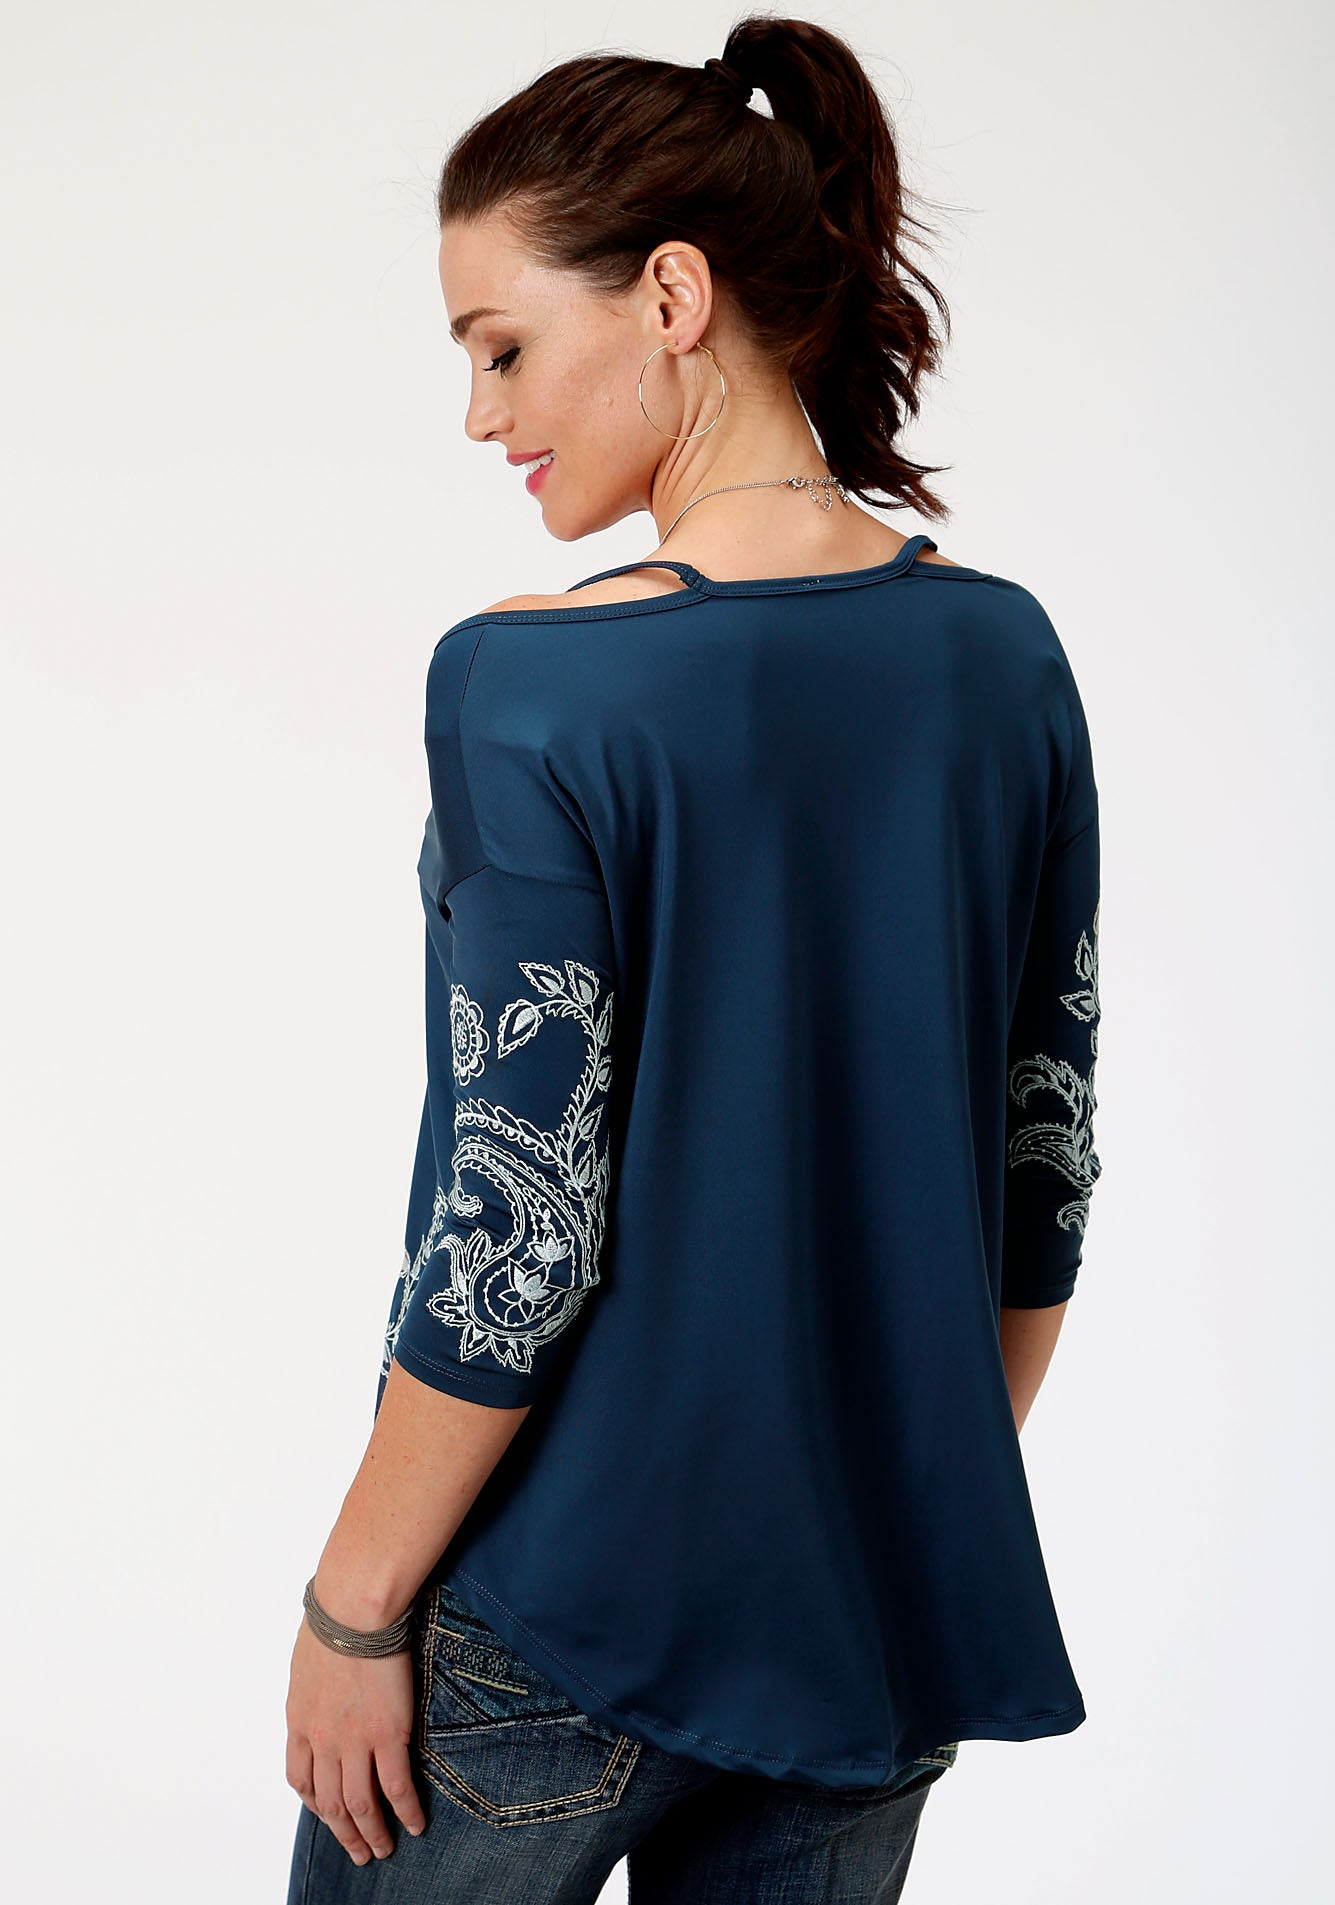 ROPER WOMENS BLUE 00099 POLY RAYON JERSEY TOP STUDIO WEST- BLUE BAYOU LONG SLEEVE